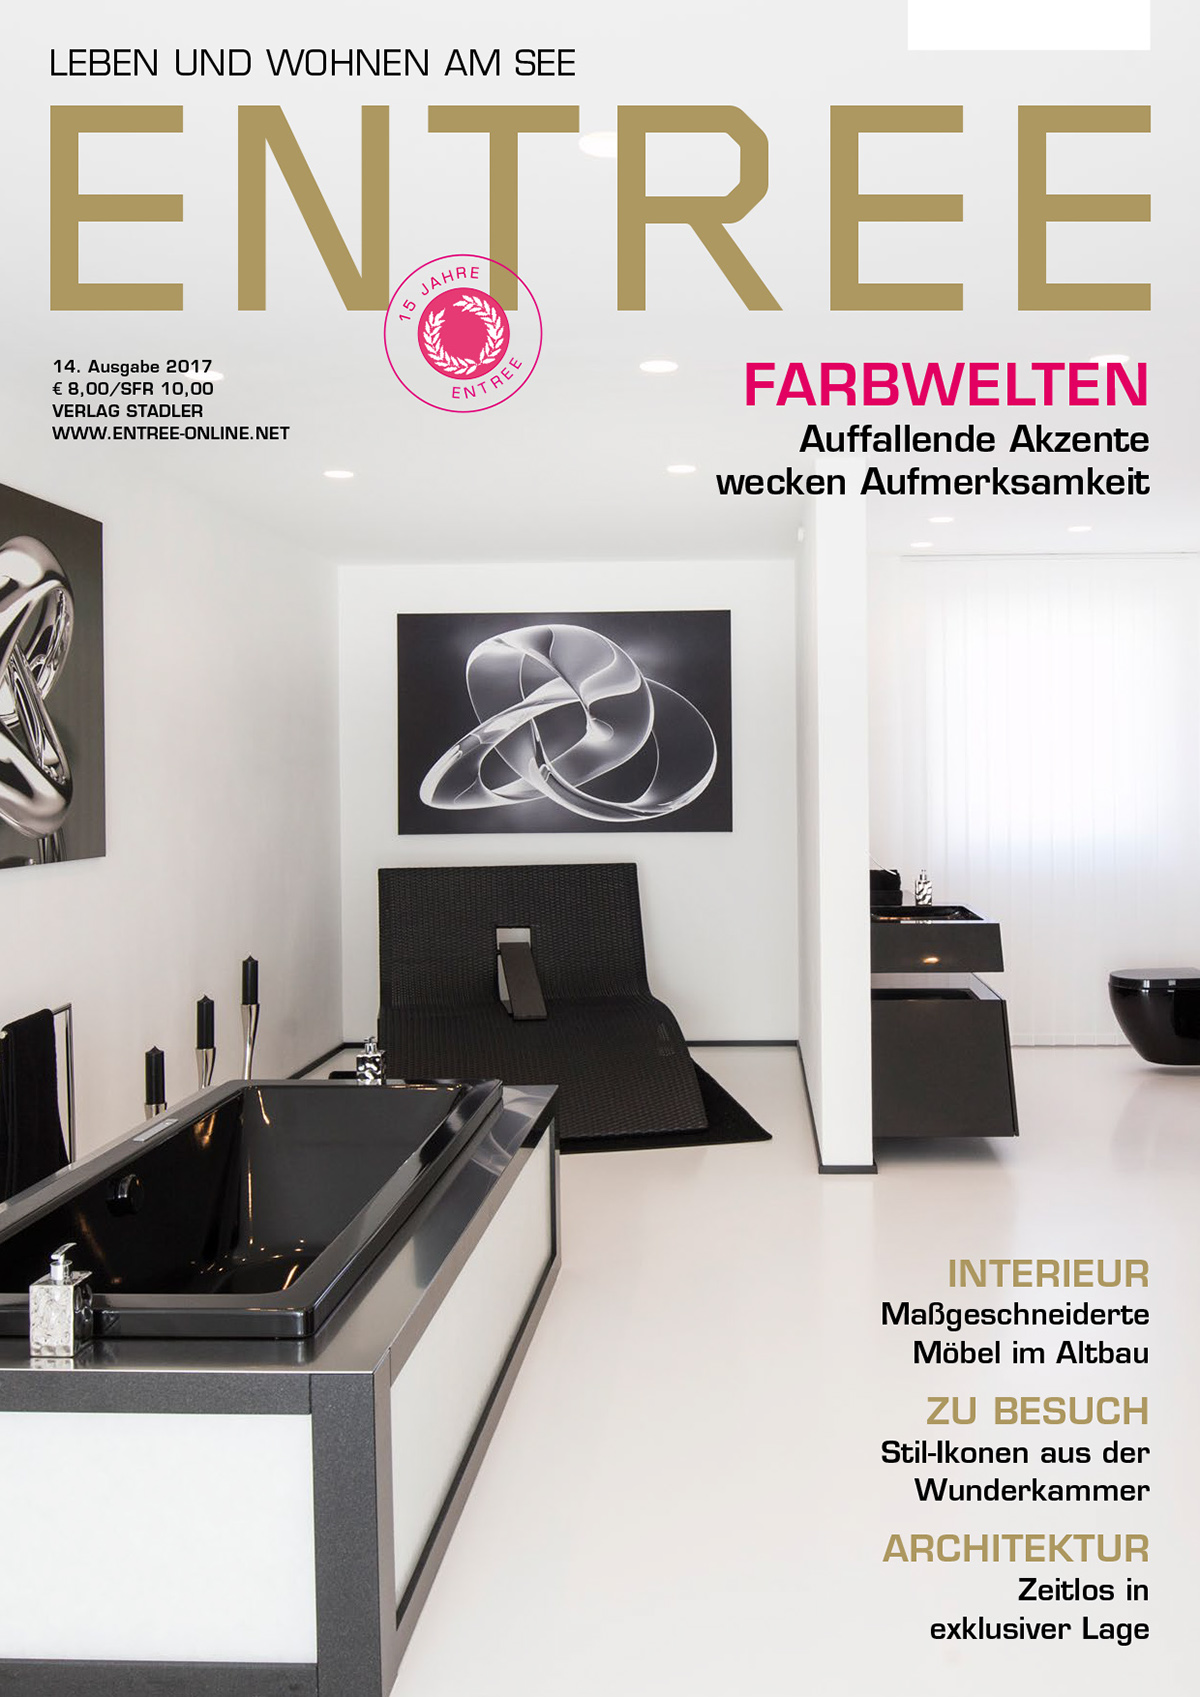 Coverdesign for ENTREE (Architecture Magazine) on Behance